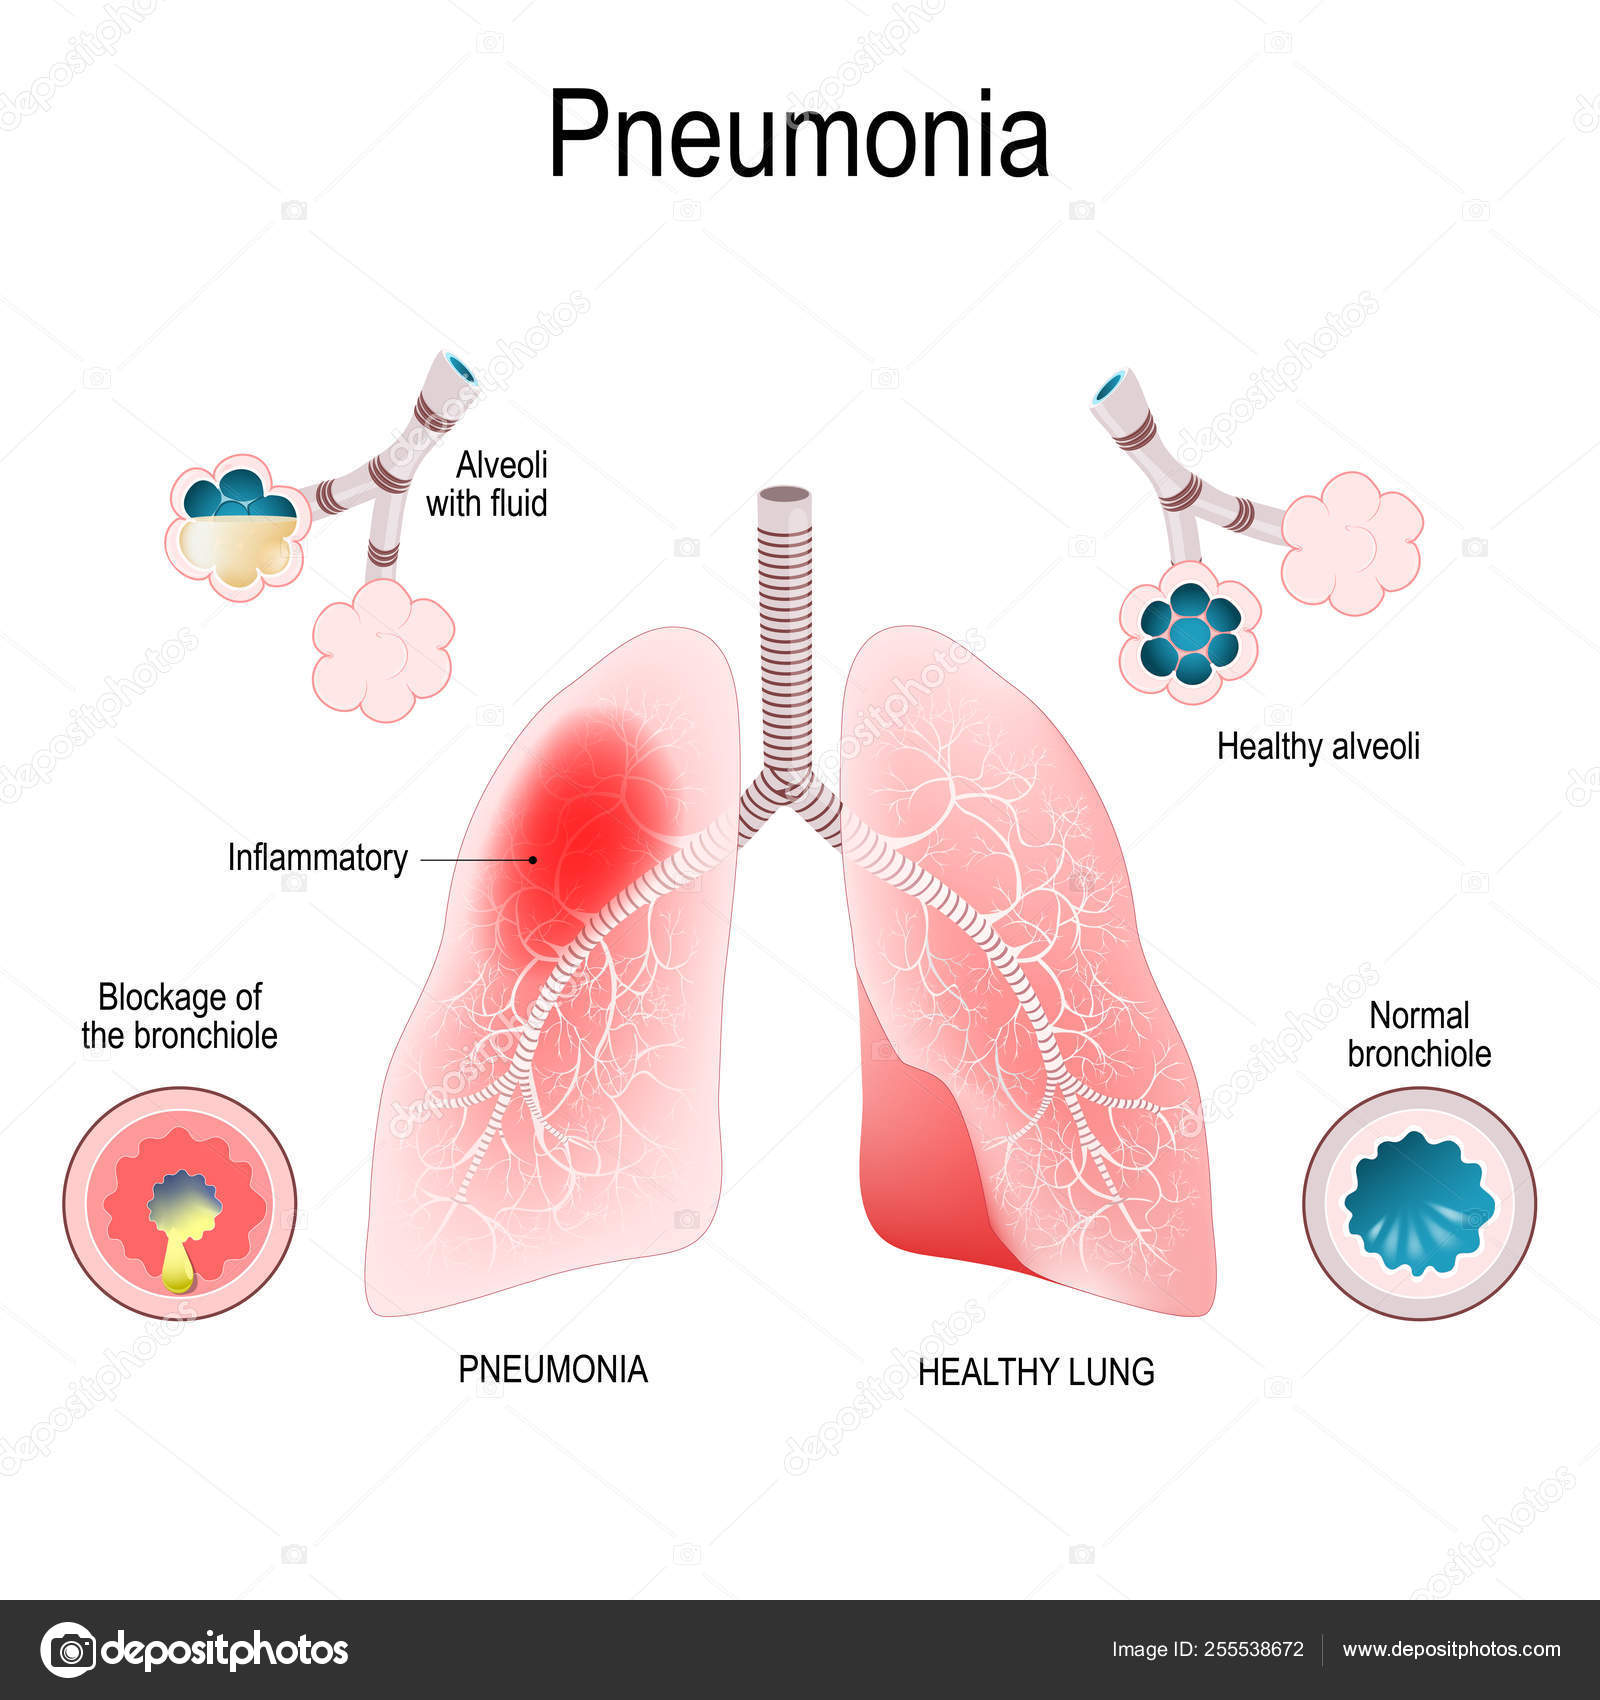 hight resolution of pneumonia difference and comparison of healthy lungs bronchiol archivo im genes vectoriales